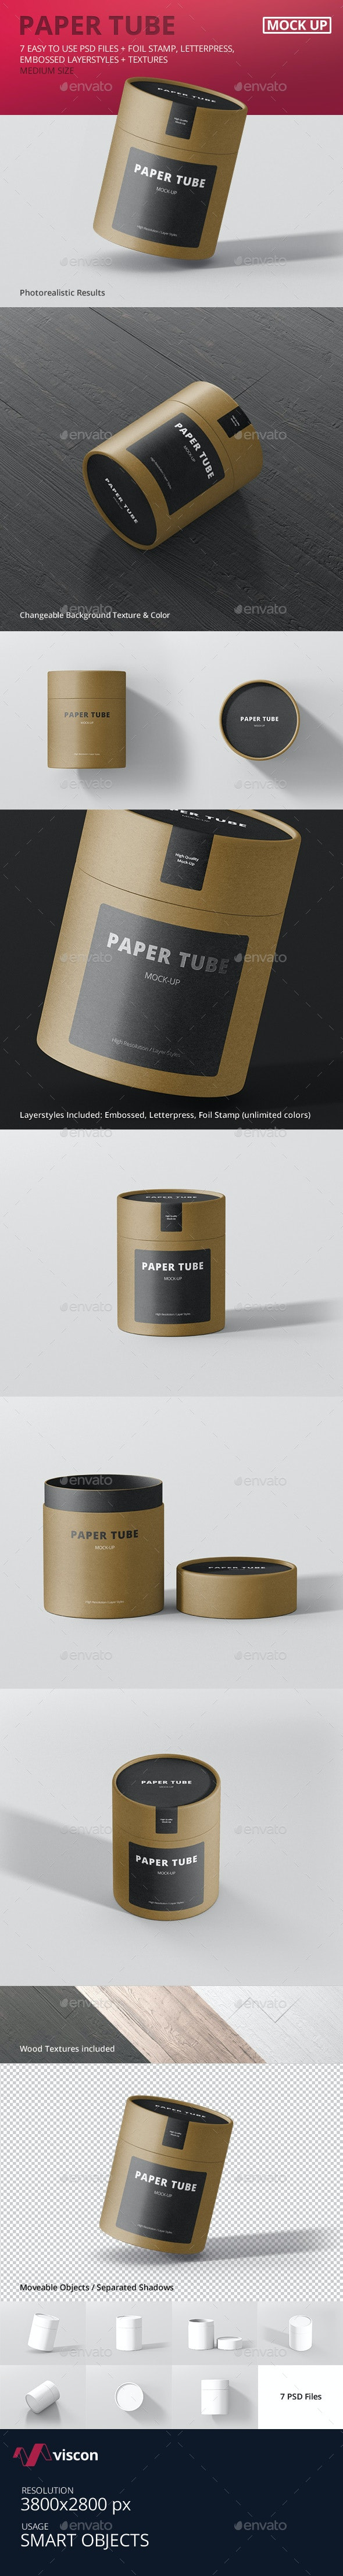 Paper Tube Packaging Mock-Up - Medium - Miscellaneous Packaging